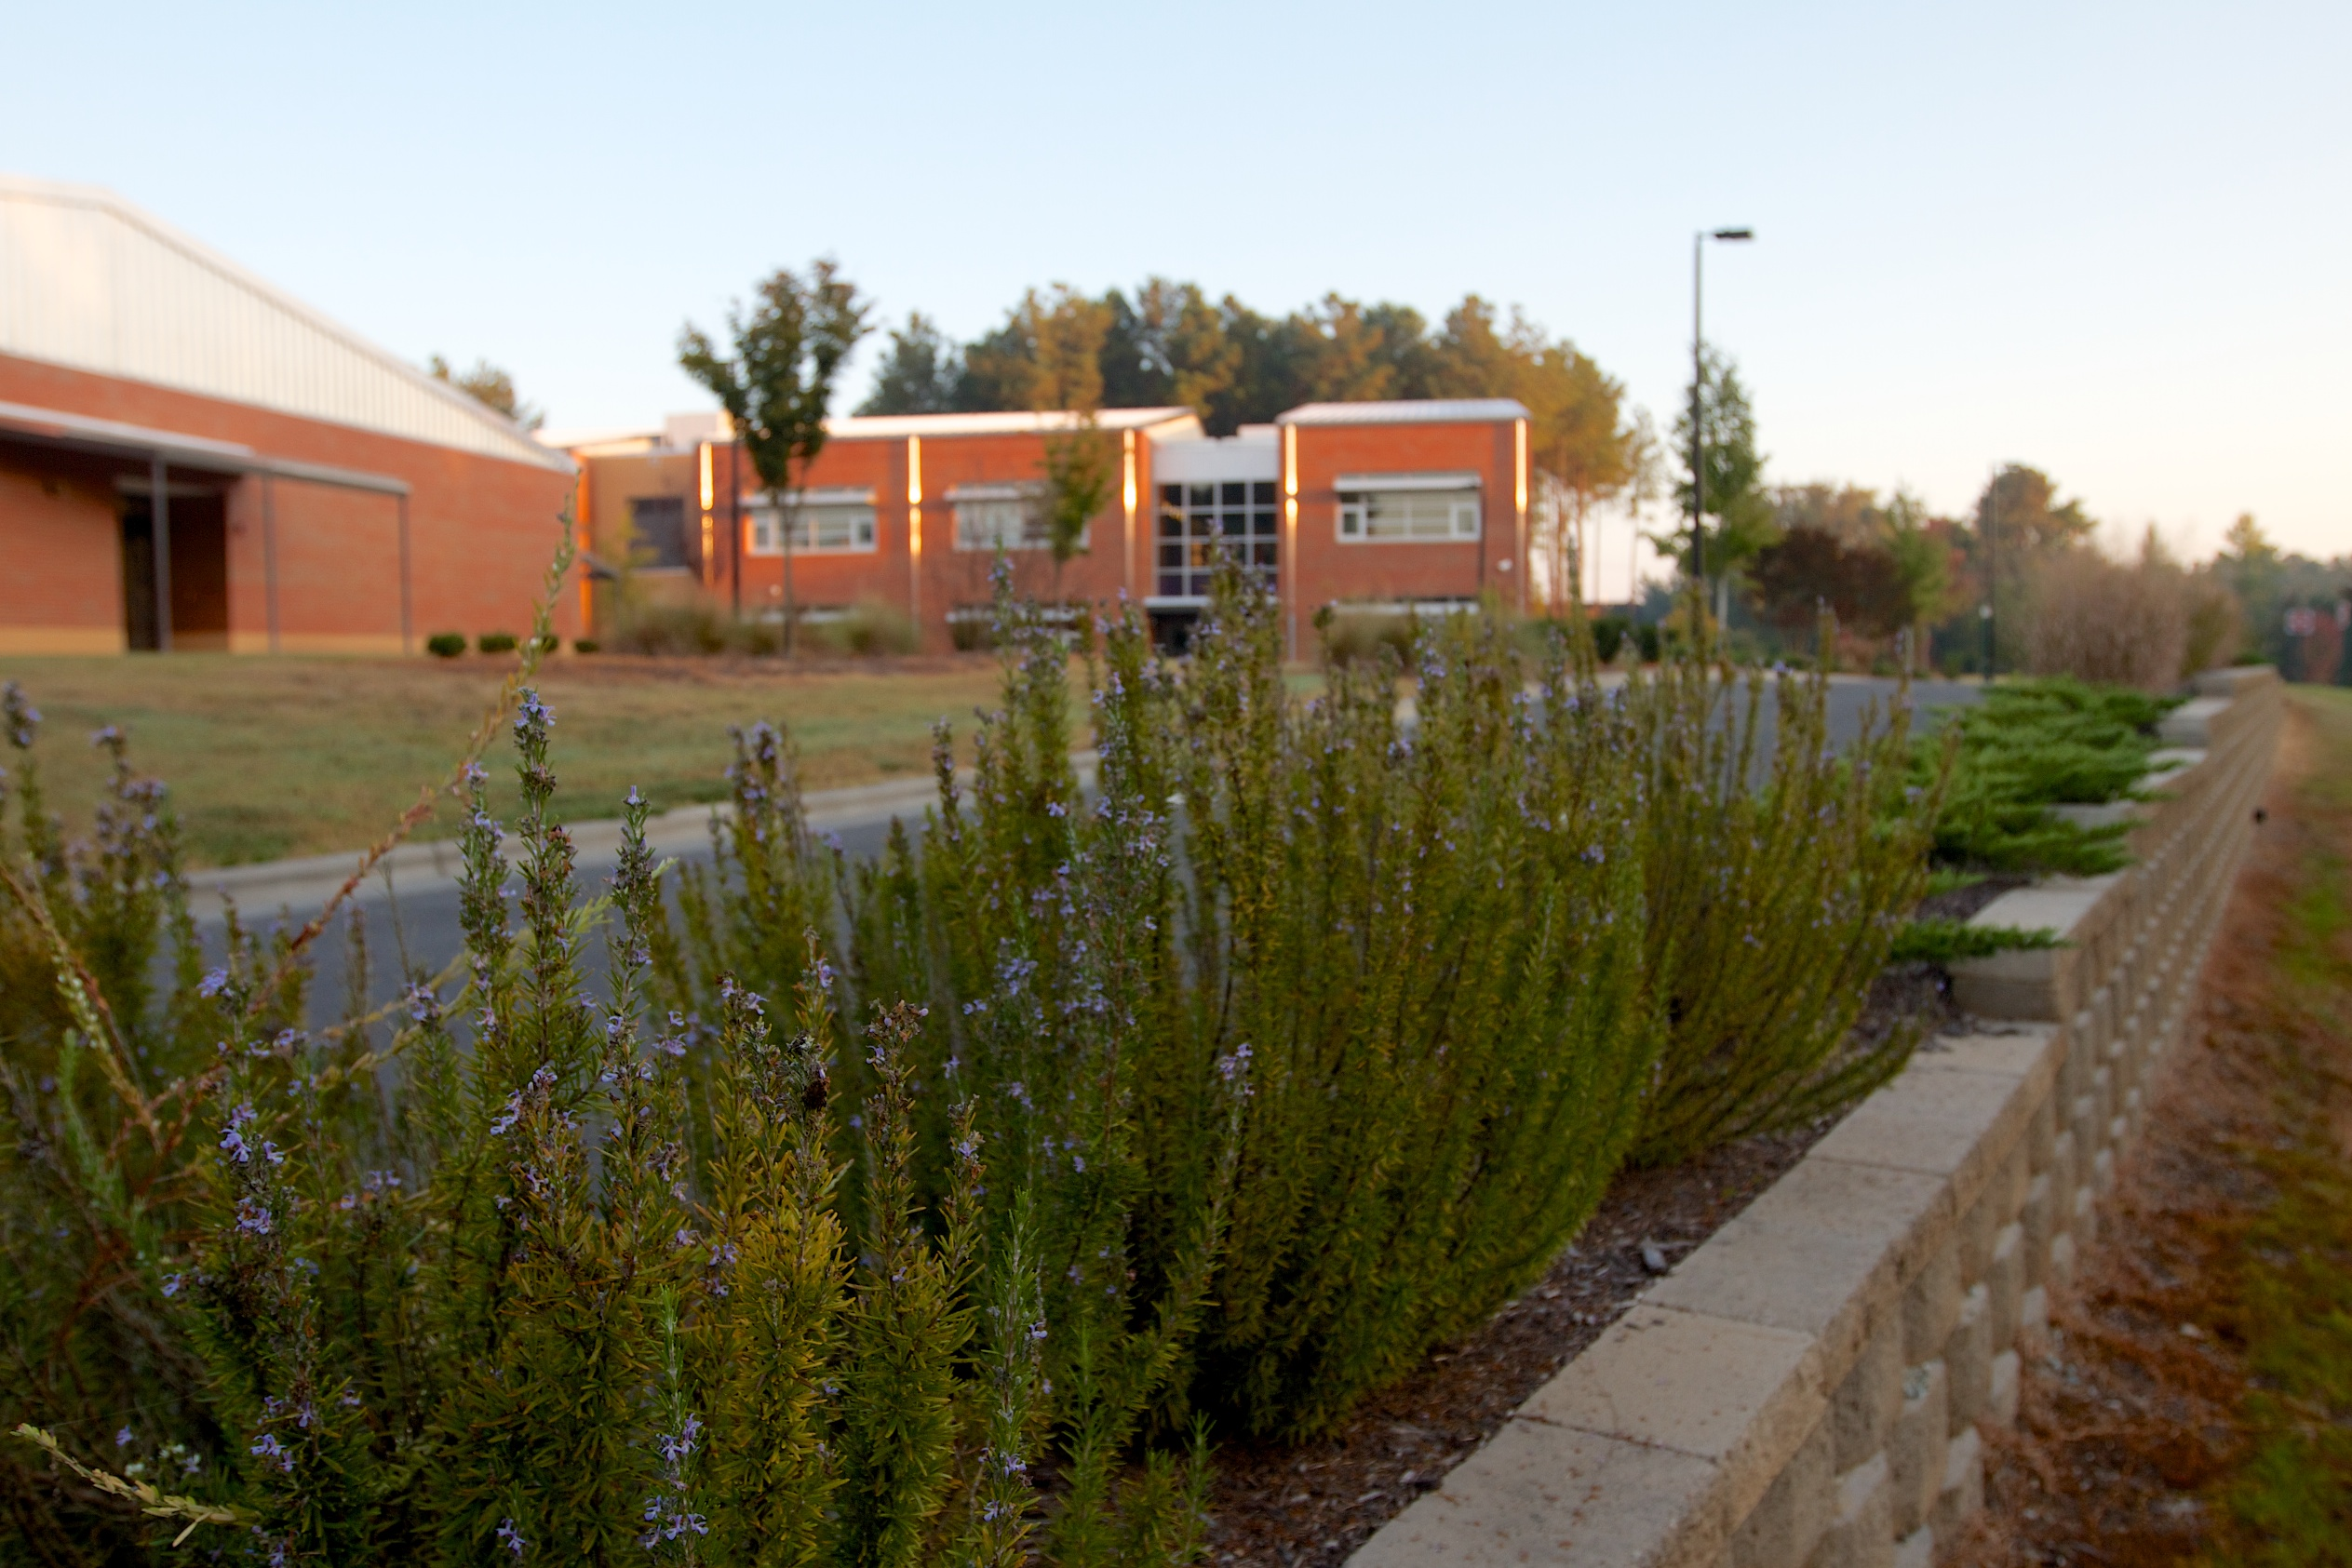 ... Master Planning, Permitting And Local Approvals, Civil Engineering And  Landscape Architecture For Over 40 Schools In North Carolina.